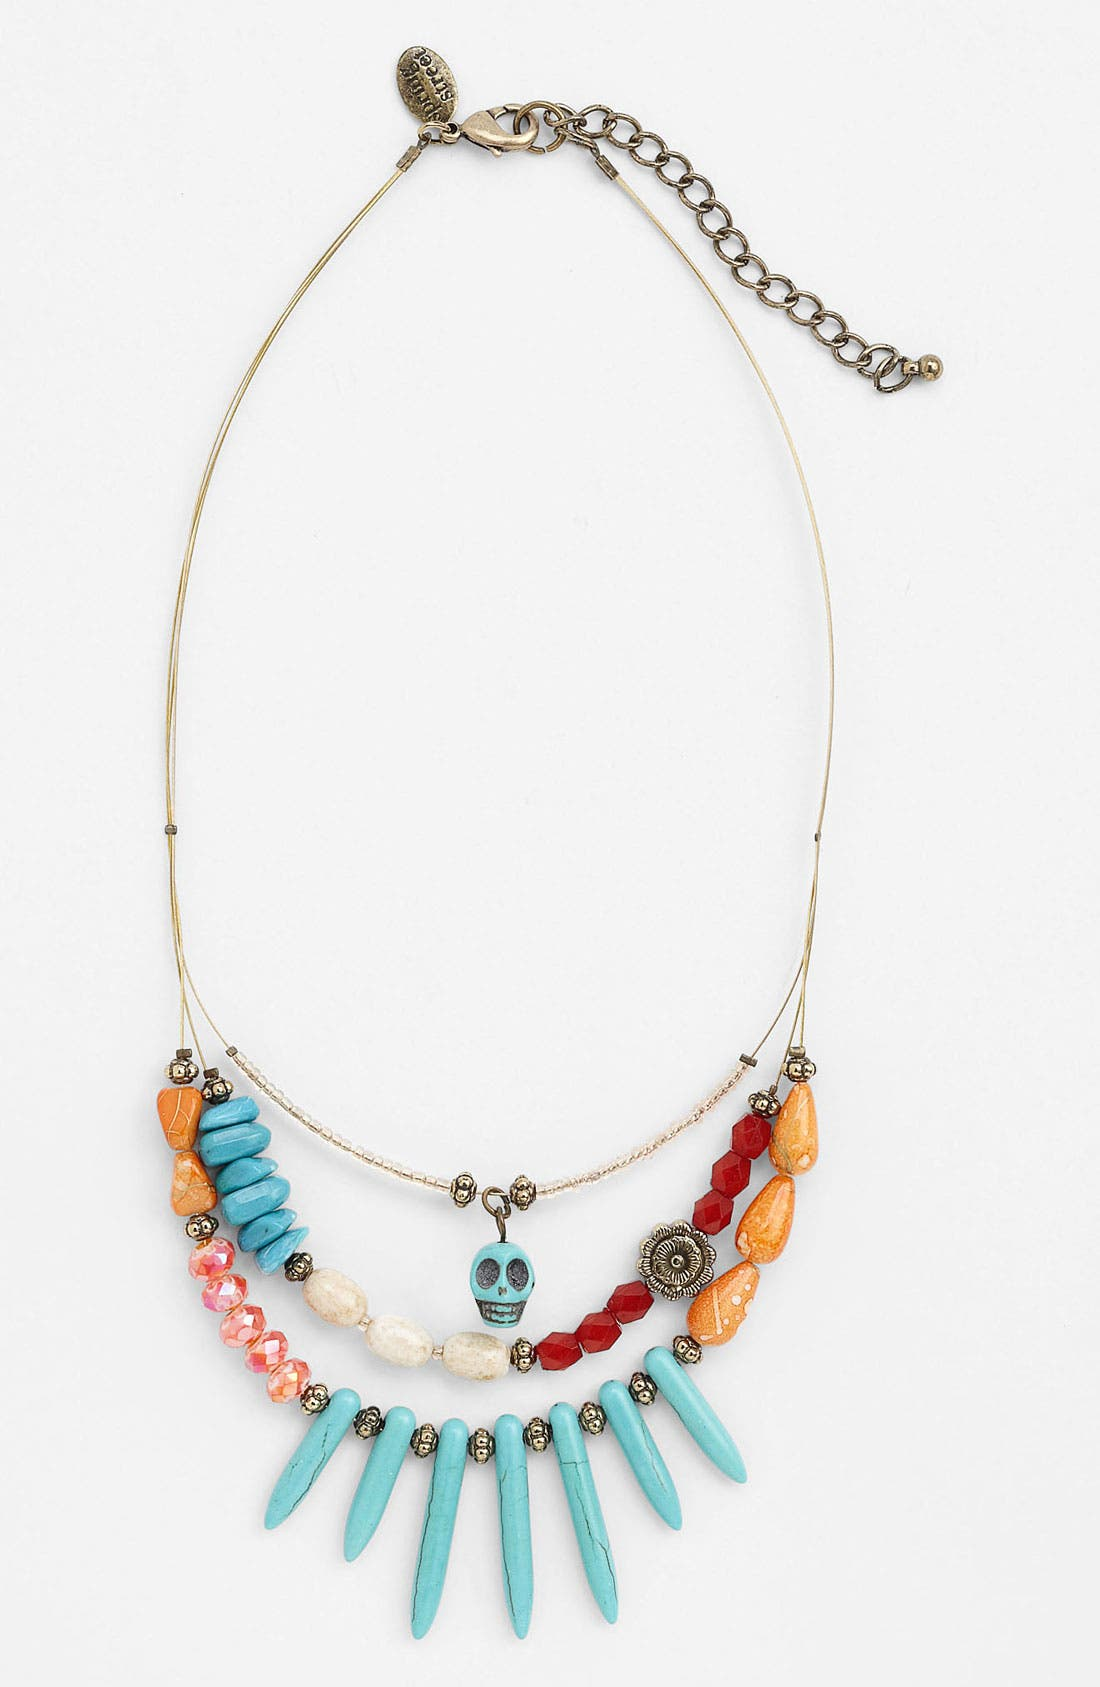 Alternate Image 1 Selected - Spring Street Multistrand Skull Necklace (Nordstrom Exclusive)